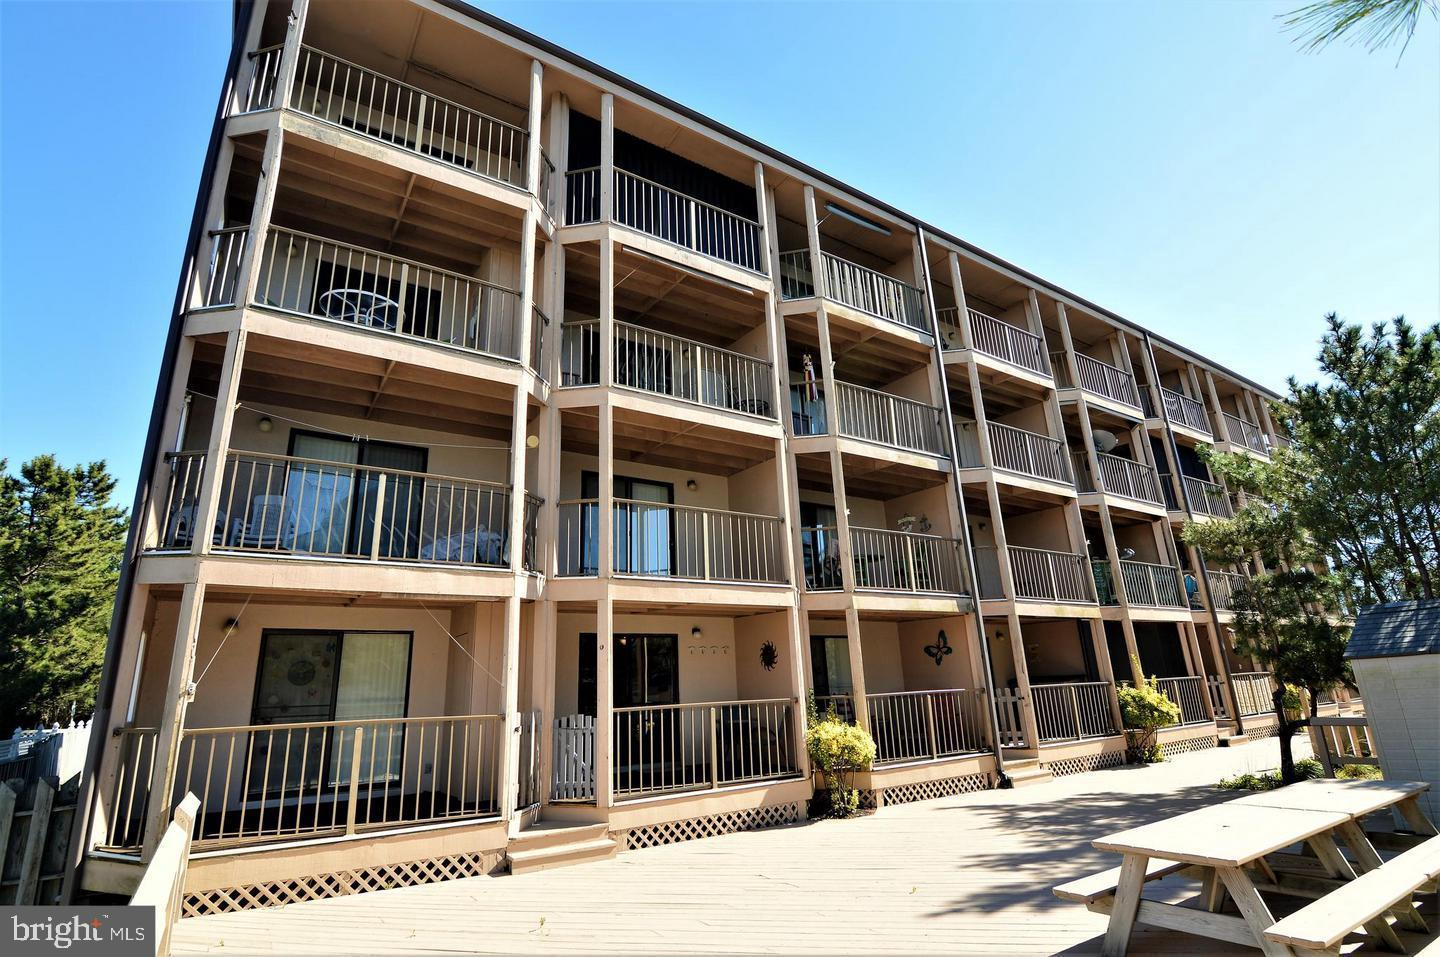 Looking for a beach property in an unbelievable location for a great price? Check out this Jamaica Bay condo located off 33rd st. bayside within walking distance to everything!! 3 blocks to the beach. 6 Blocks to the world famous Ocean City Boardwalk!! Short walk to Mini Golf ,amusement park , nightlife, shopping and restaurants. Nice quiet private balcony !! Enjoy the beautiful pool on those hot summer days. This has been the current owners private get away for years and now it can be yours to enjoy!! Sold turn key fully furnished .Front loading washer and dryer.  Low association fee's include all exterior maintenance, insurance, trash, water usage, pool, parking and reserve fund . Would also make a fantastic rental!1  Better schedule your private showing ASAP before it is sold!! Call today!